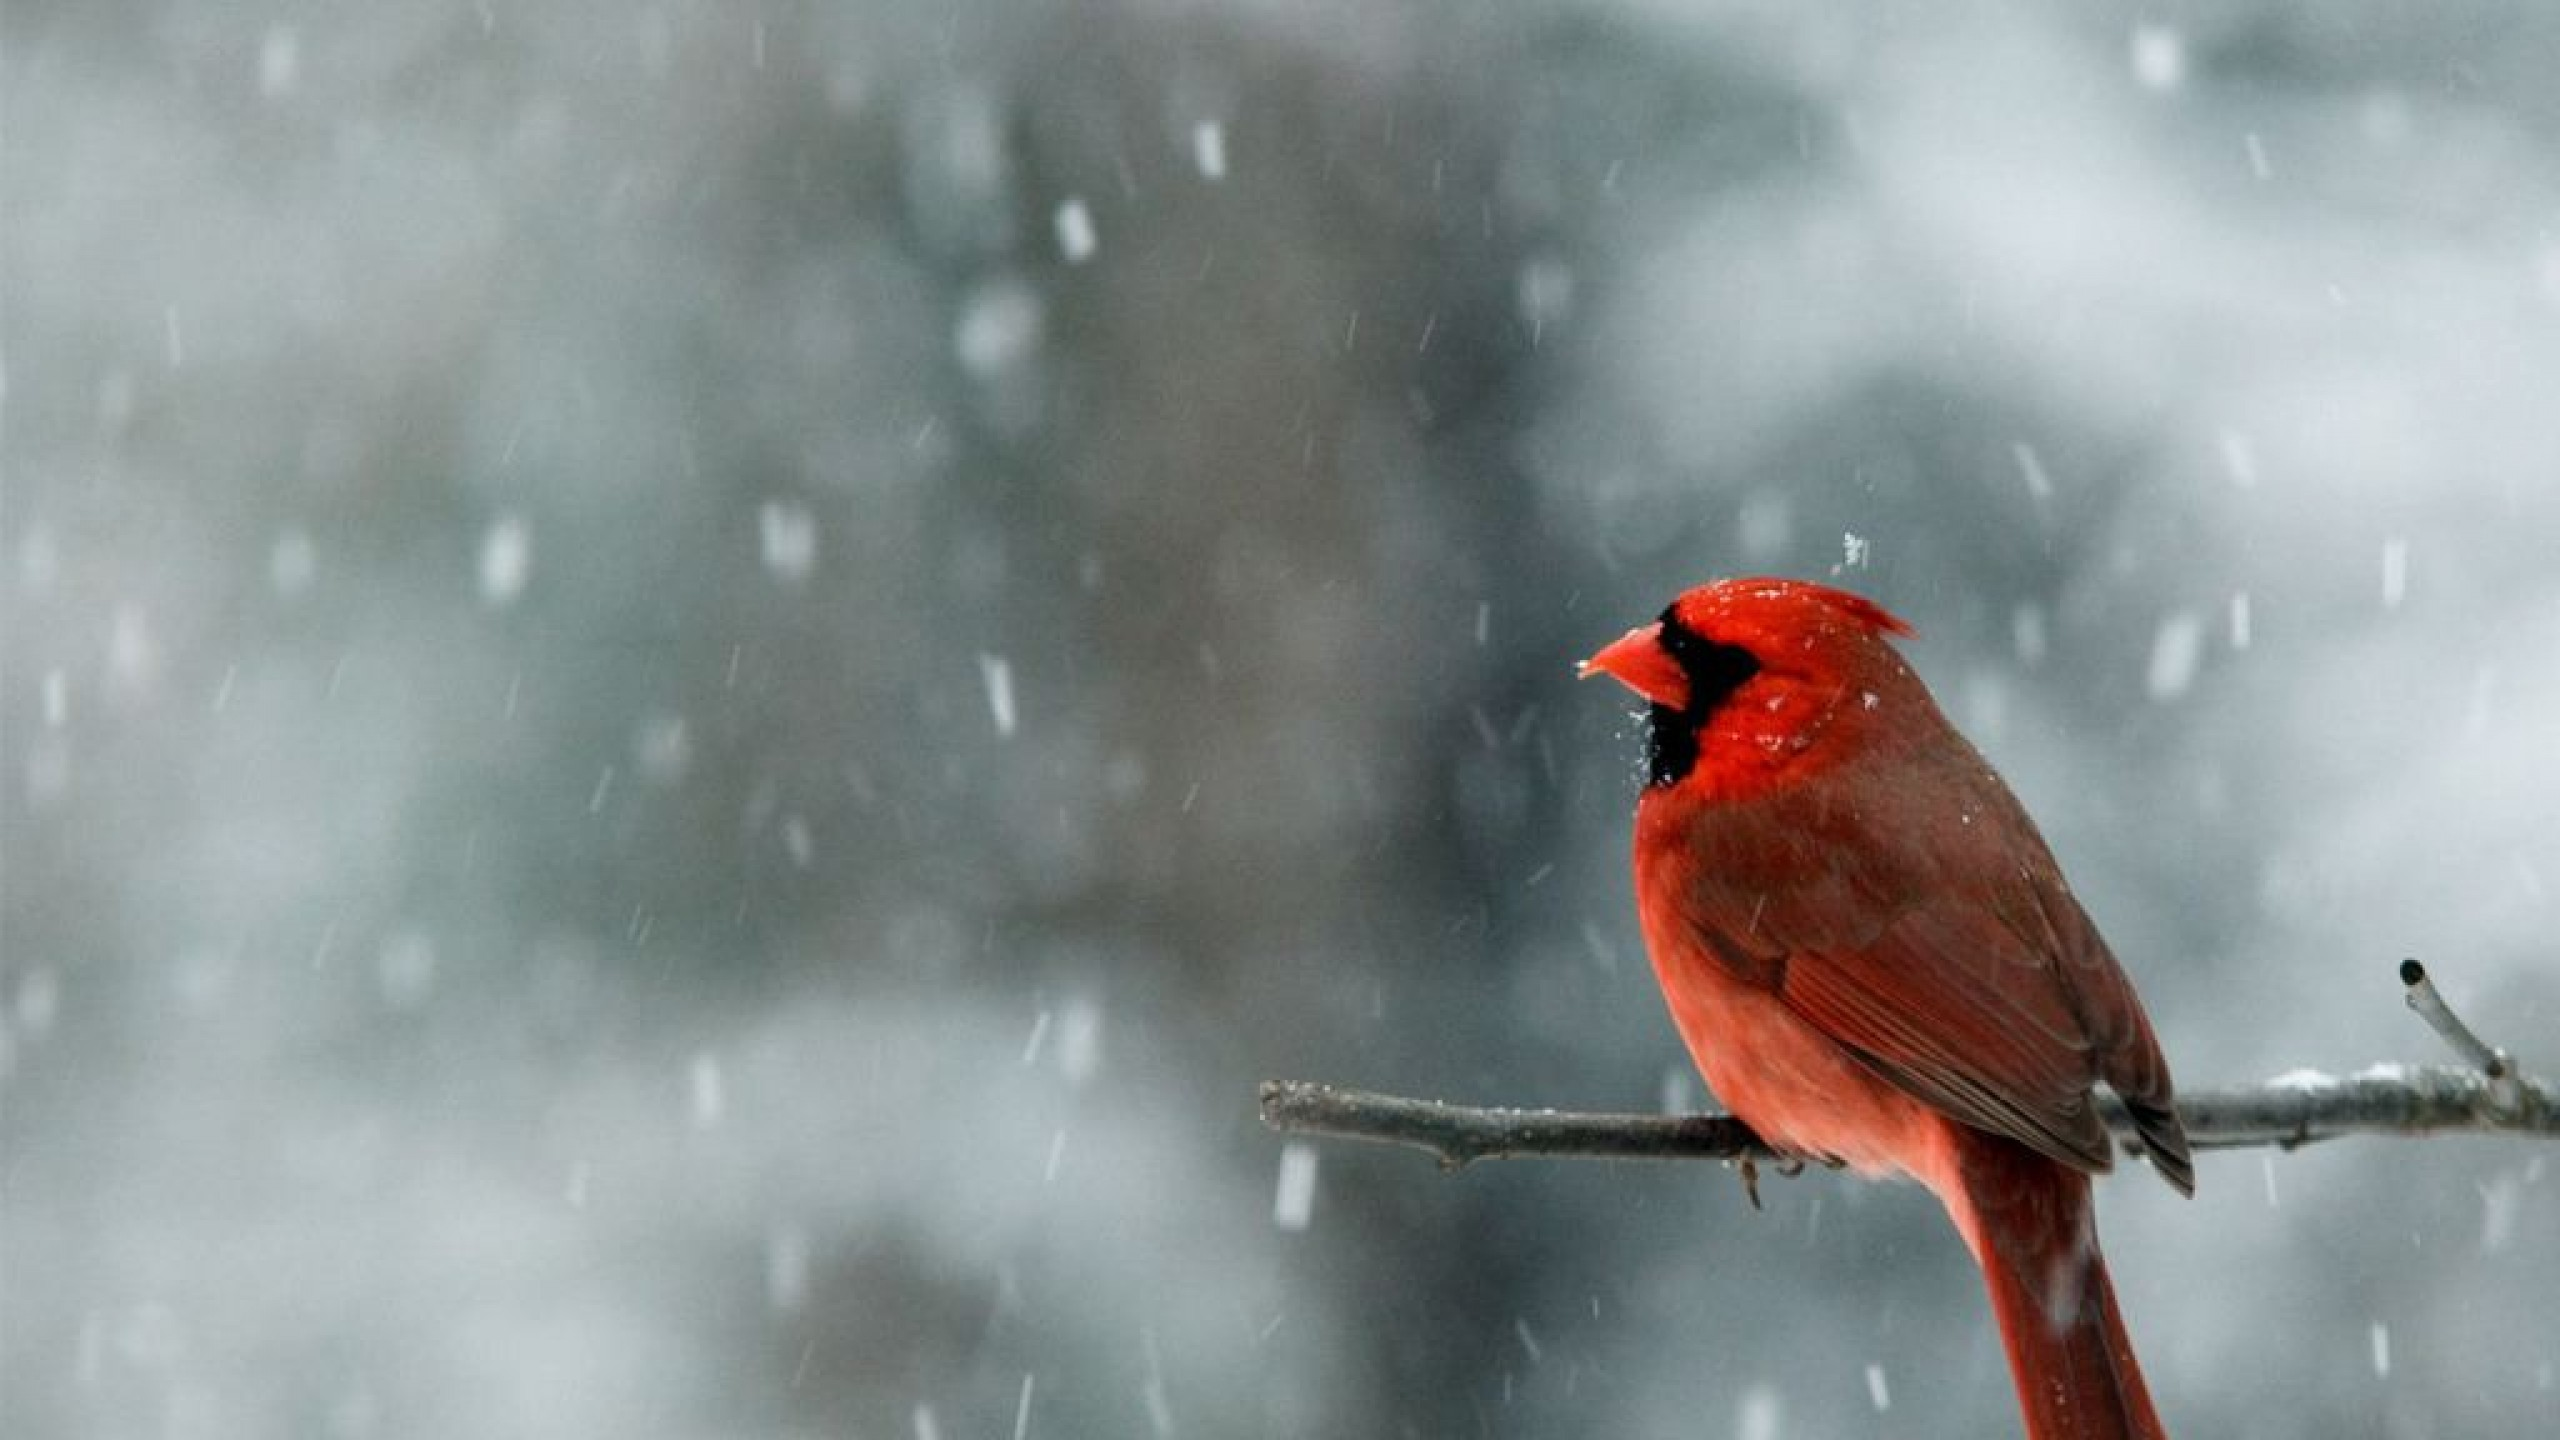 Snow falling wallpaper high definition high quality - Winter cardinal background ...